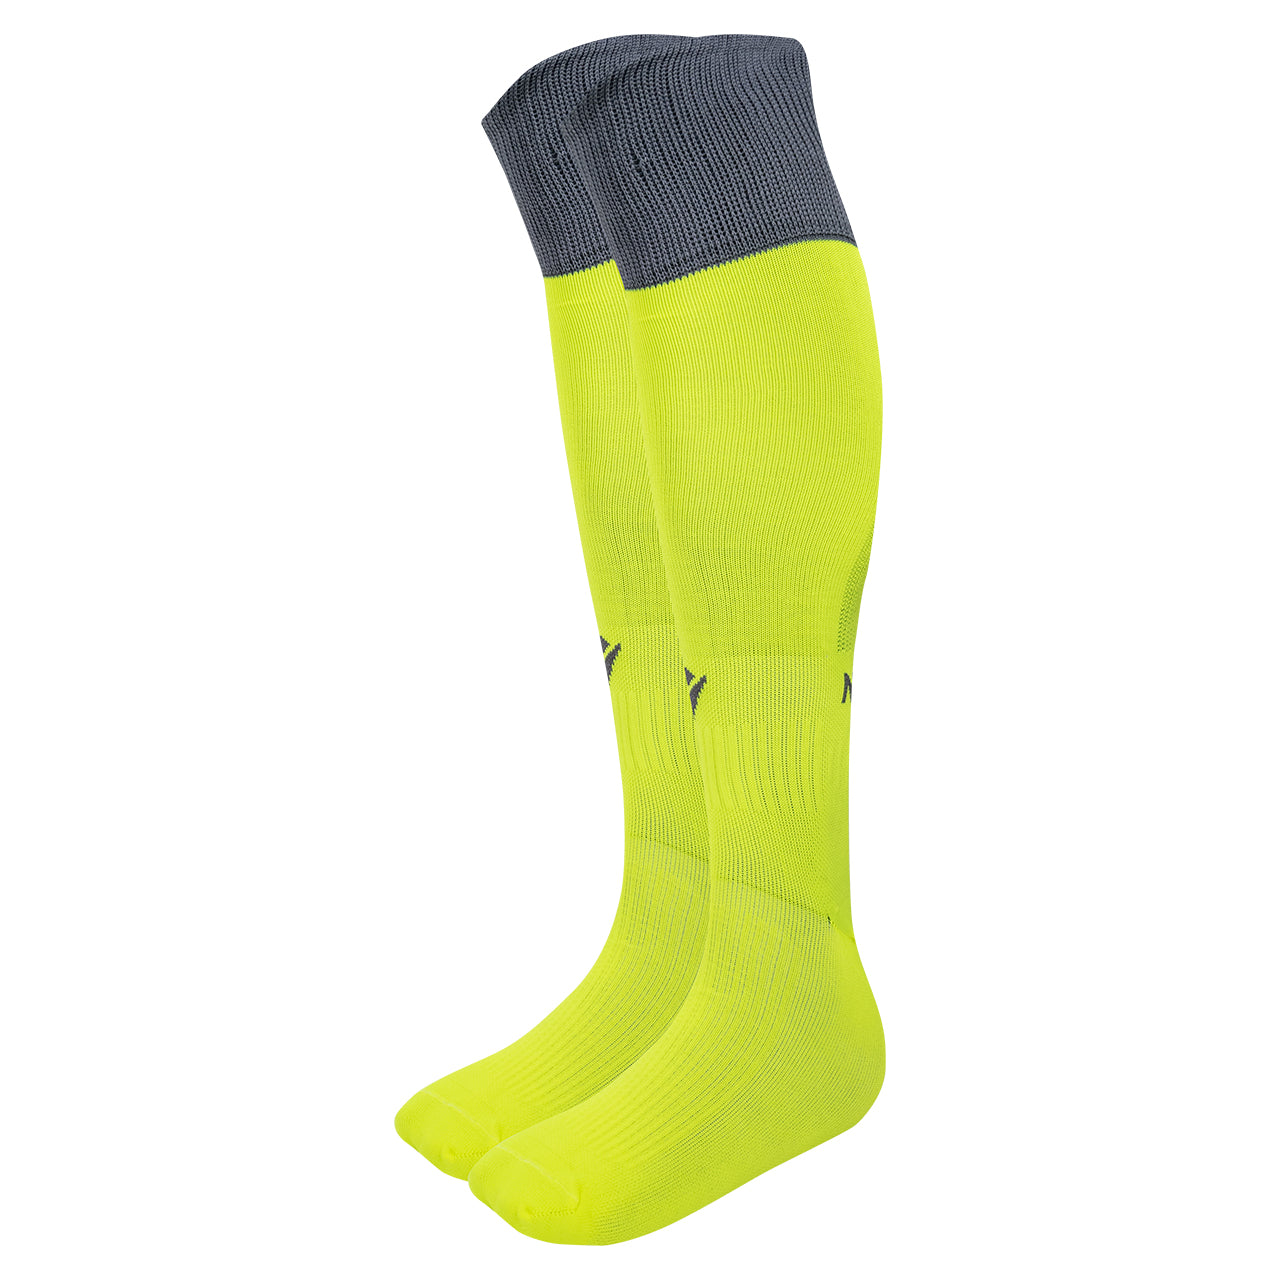 NFFC Junior Yellow Goalkeeper Socks 2020/21